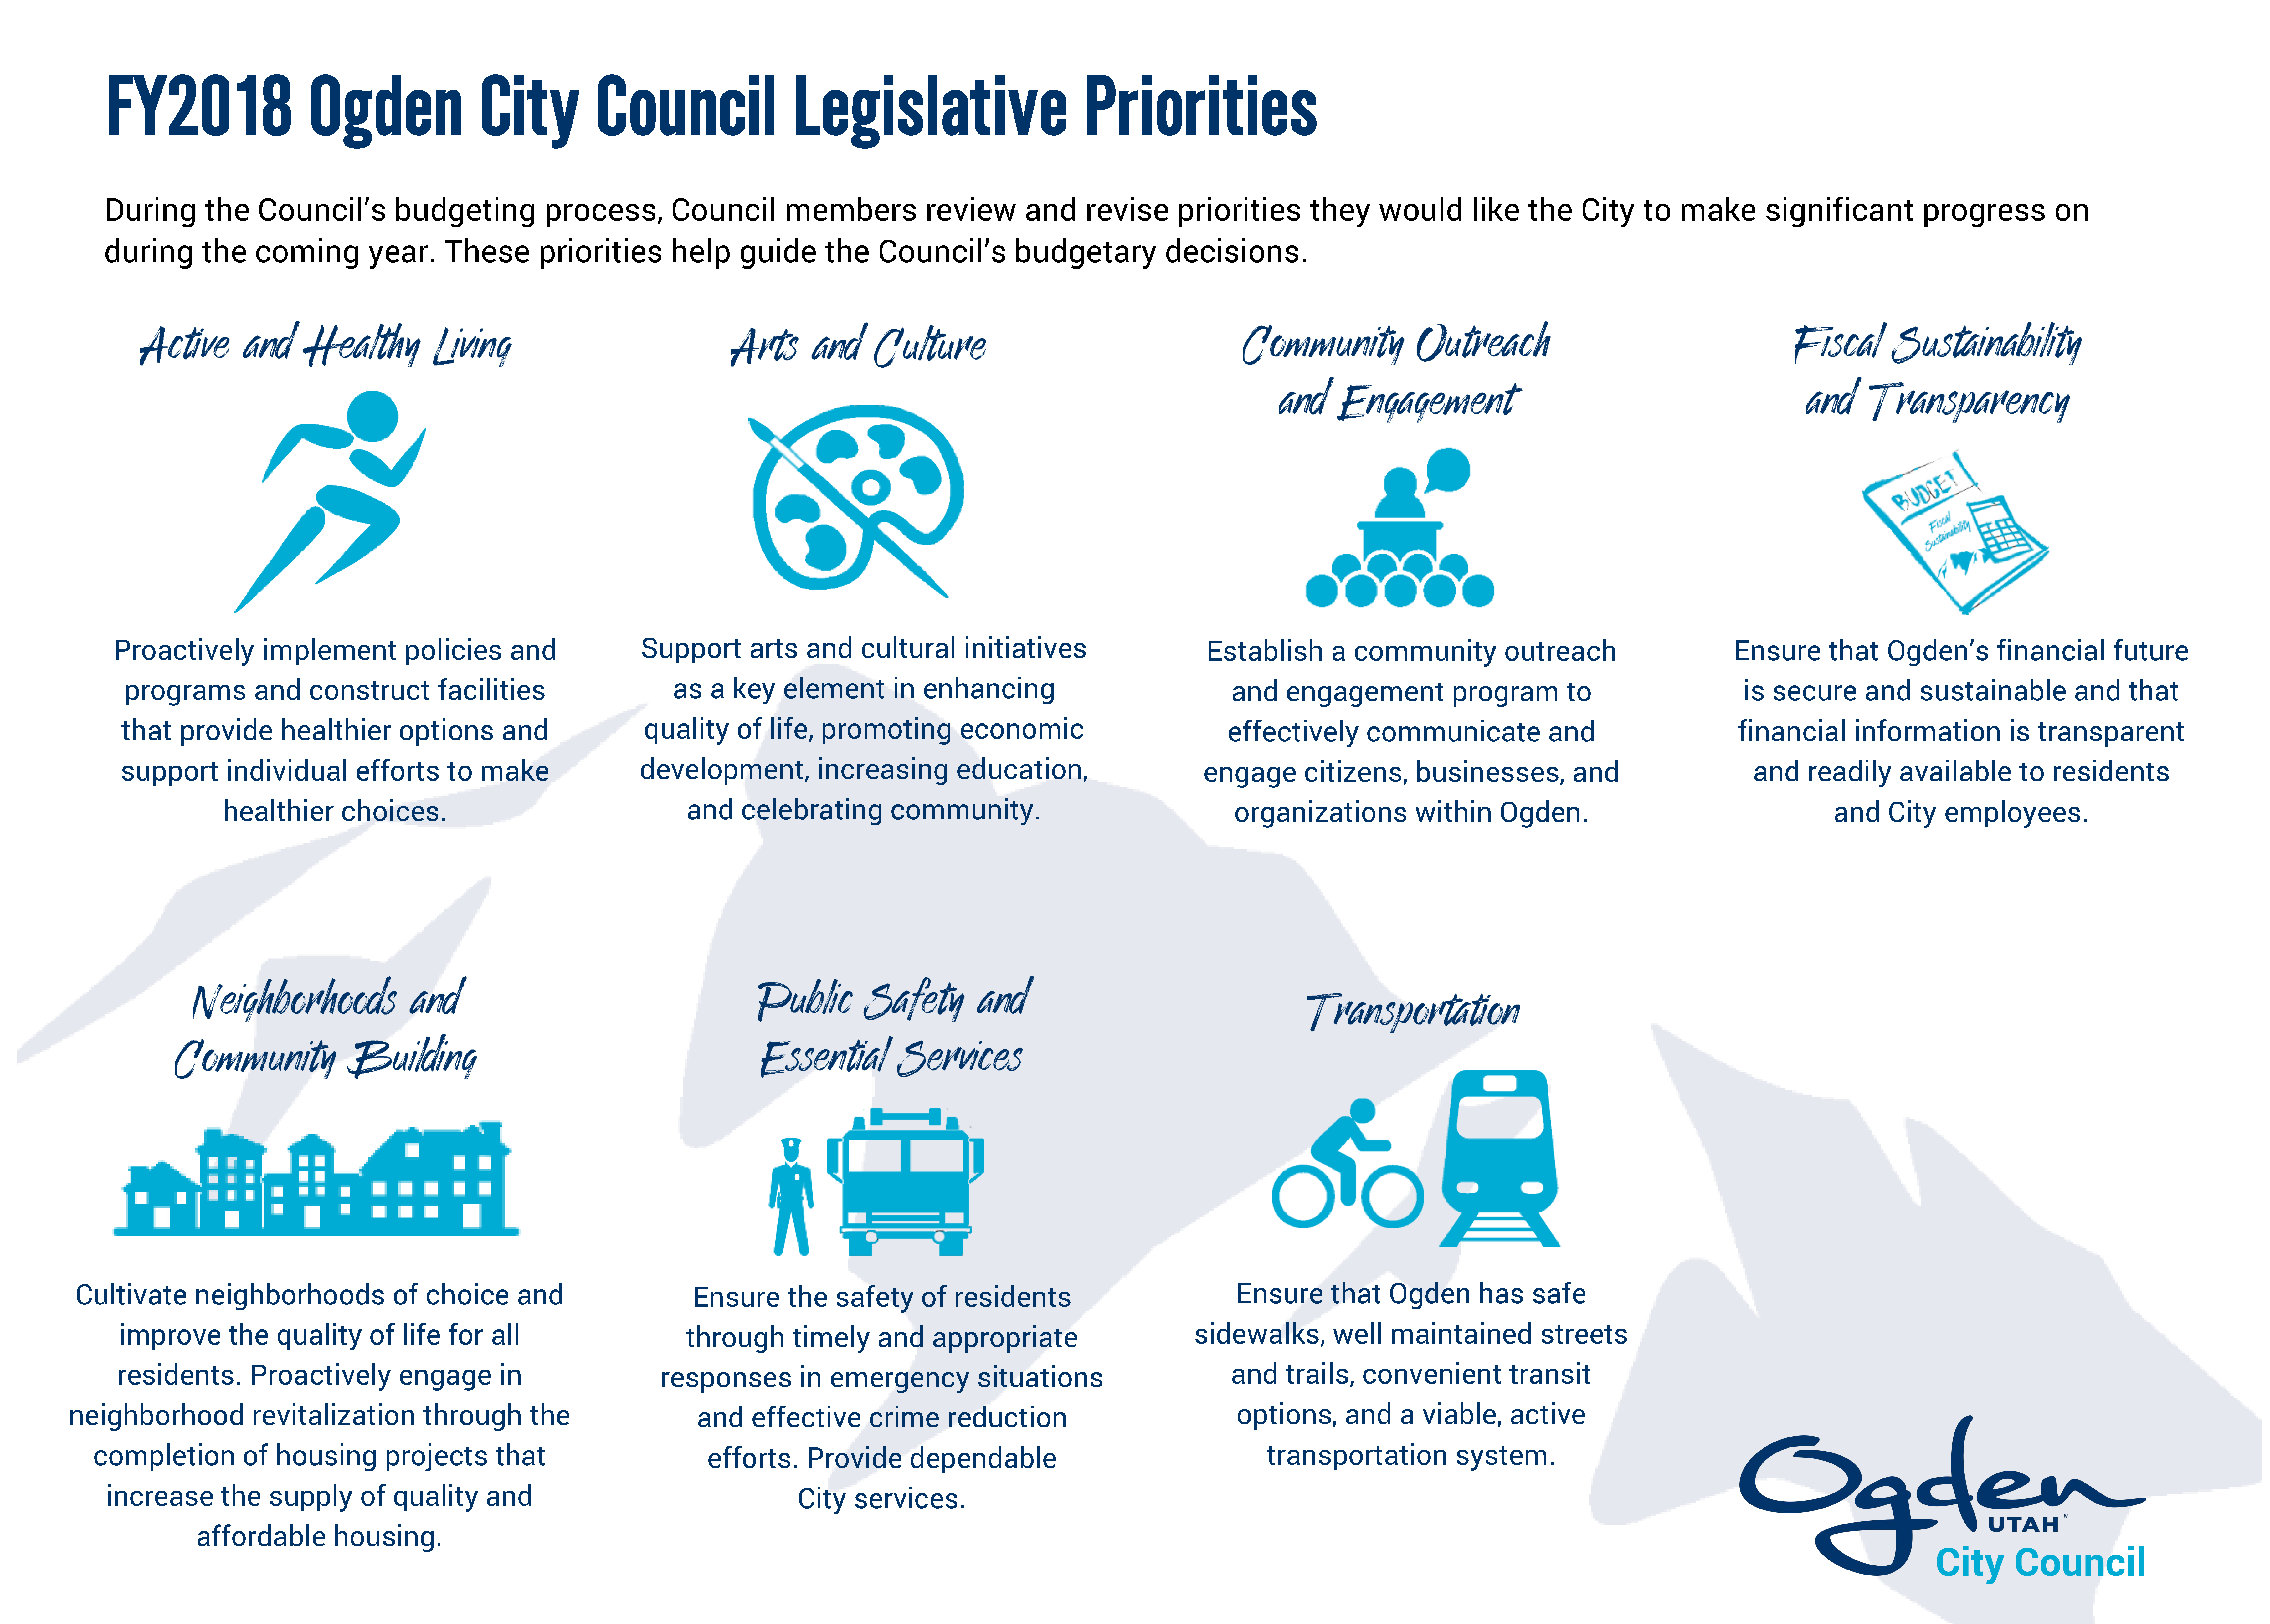 FY2018 Ogden City Council Legislative Priorities